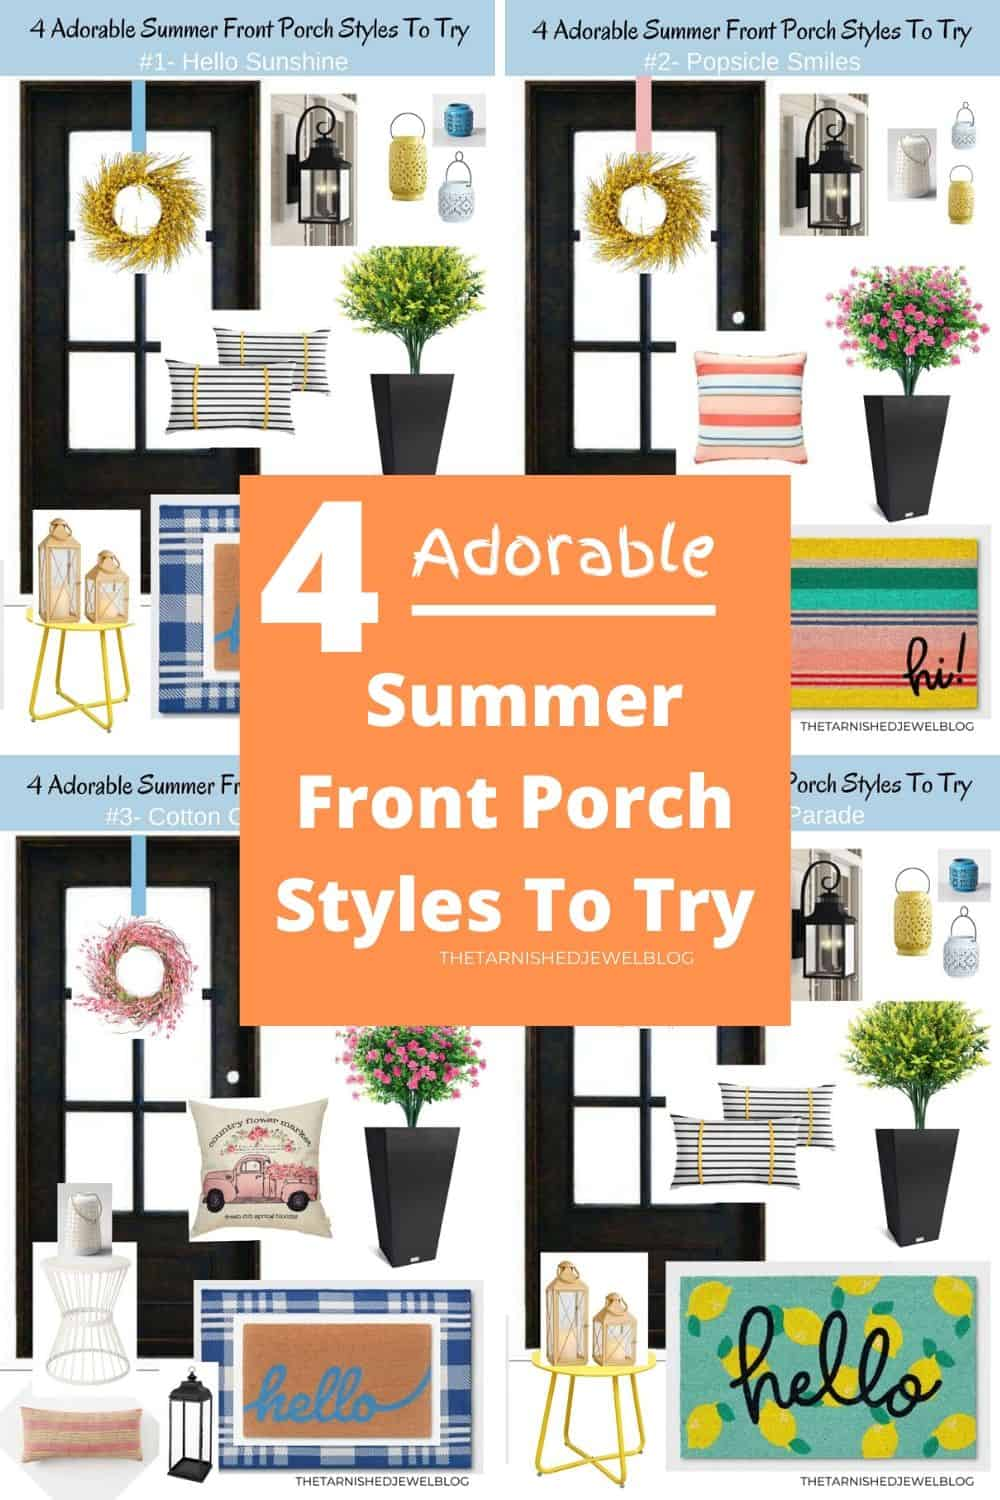 4 Adorable Summer Front Porch Styles To Try Thetarnishedjewelblog